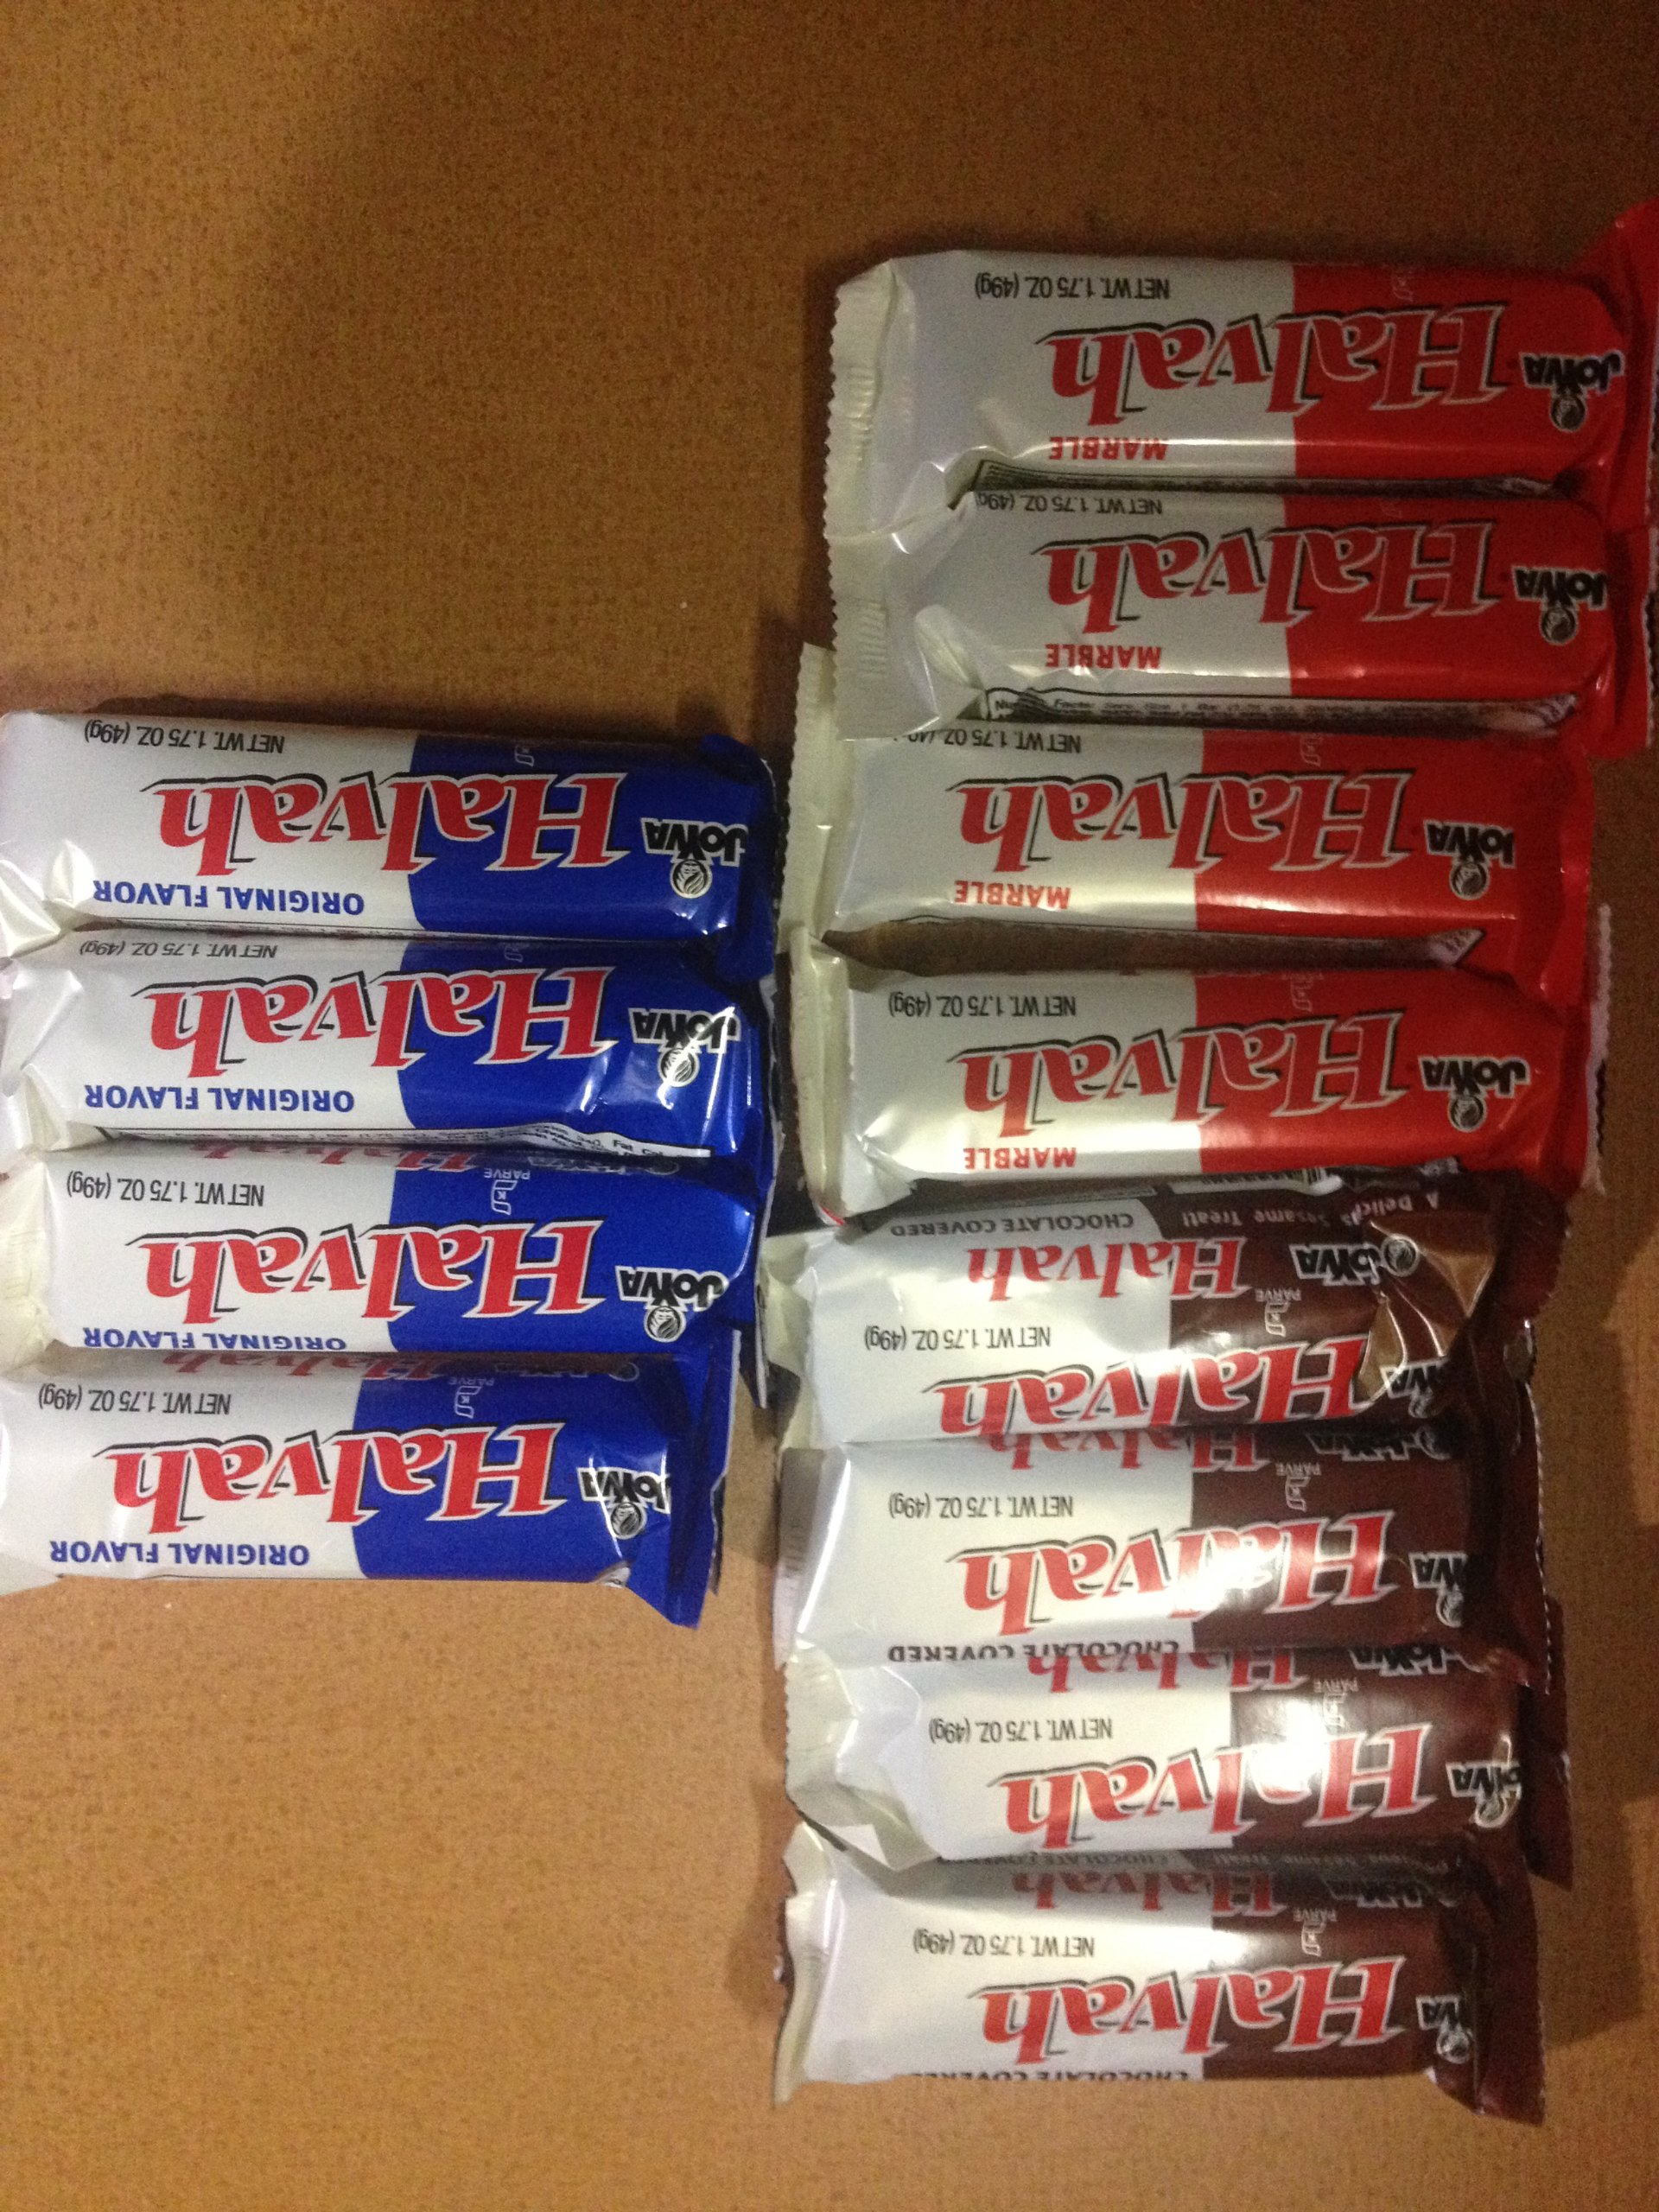 Joyva Halvah Variety 12 Count 4 Vanilla 4 Chocolate 4 Marble=12CT by Unknown